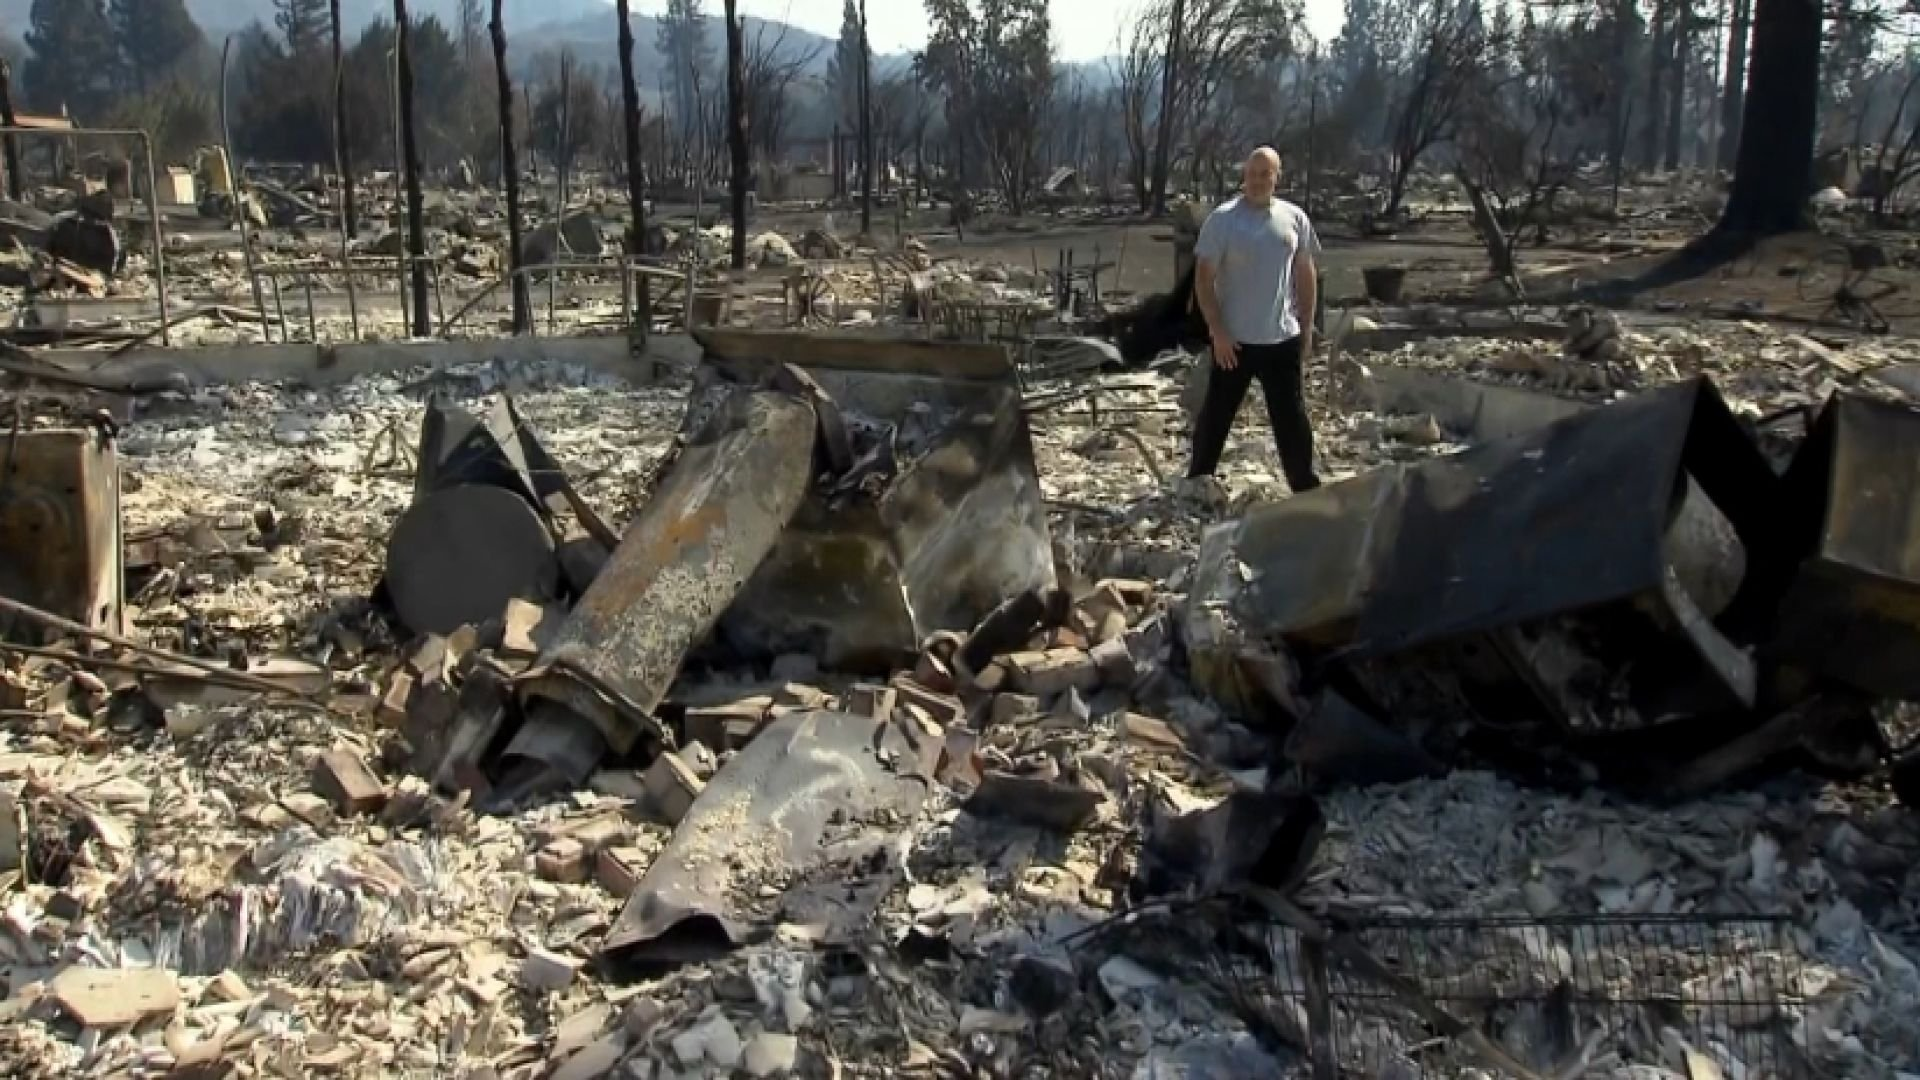 At least 31 people killed in California wildfires.